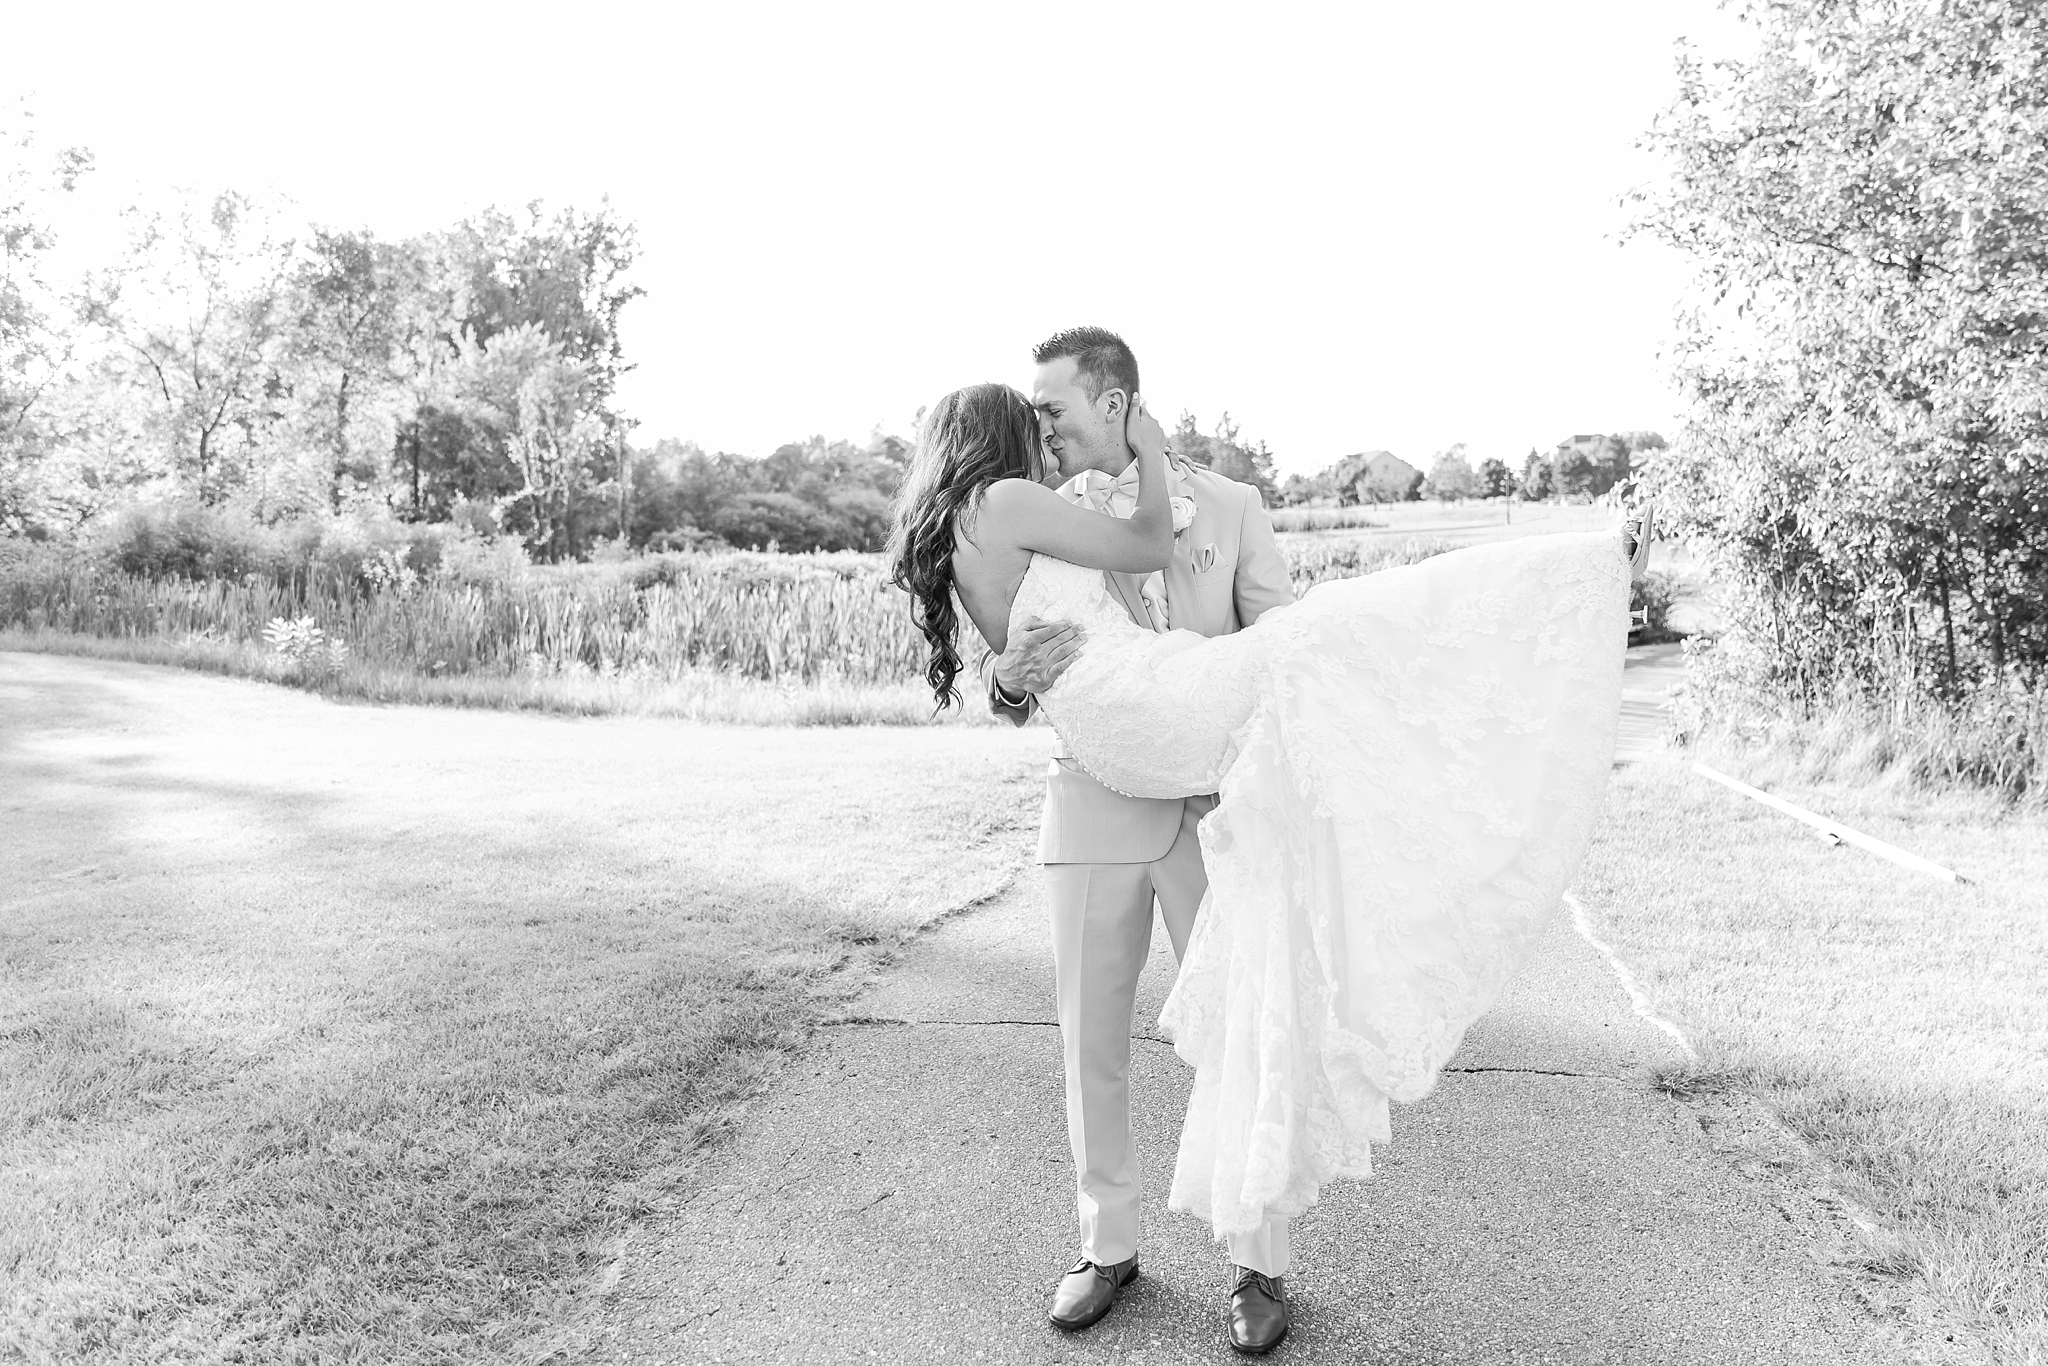 candid-timeless-wedding-photos-at-the-captains-club-in-grand-blanc-michigan-by-courtney-carolyn-photography_0114.jpg